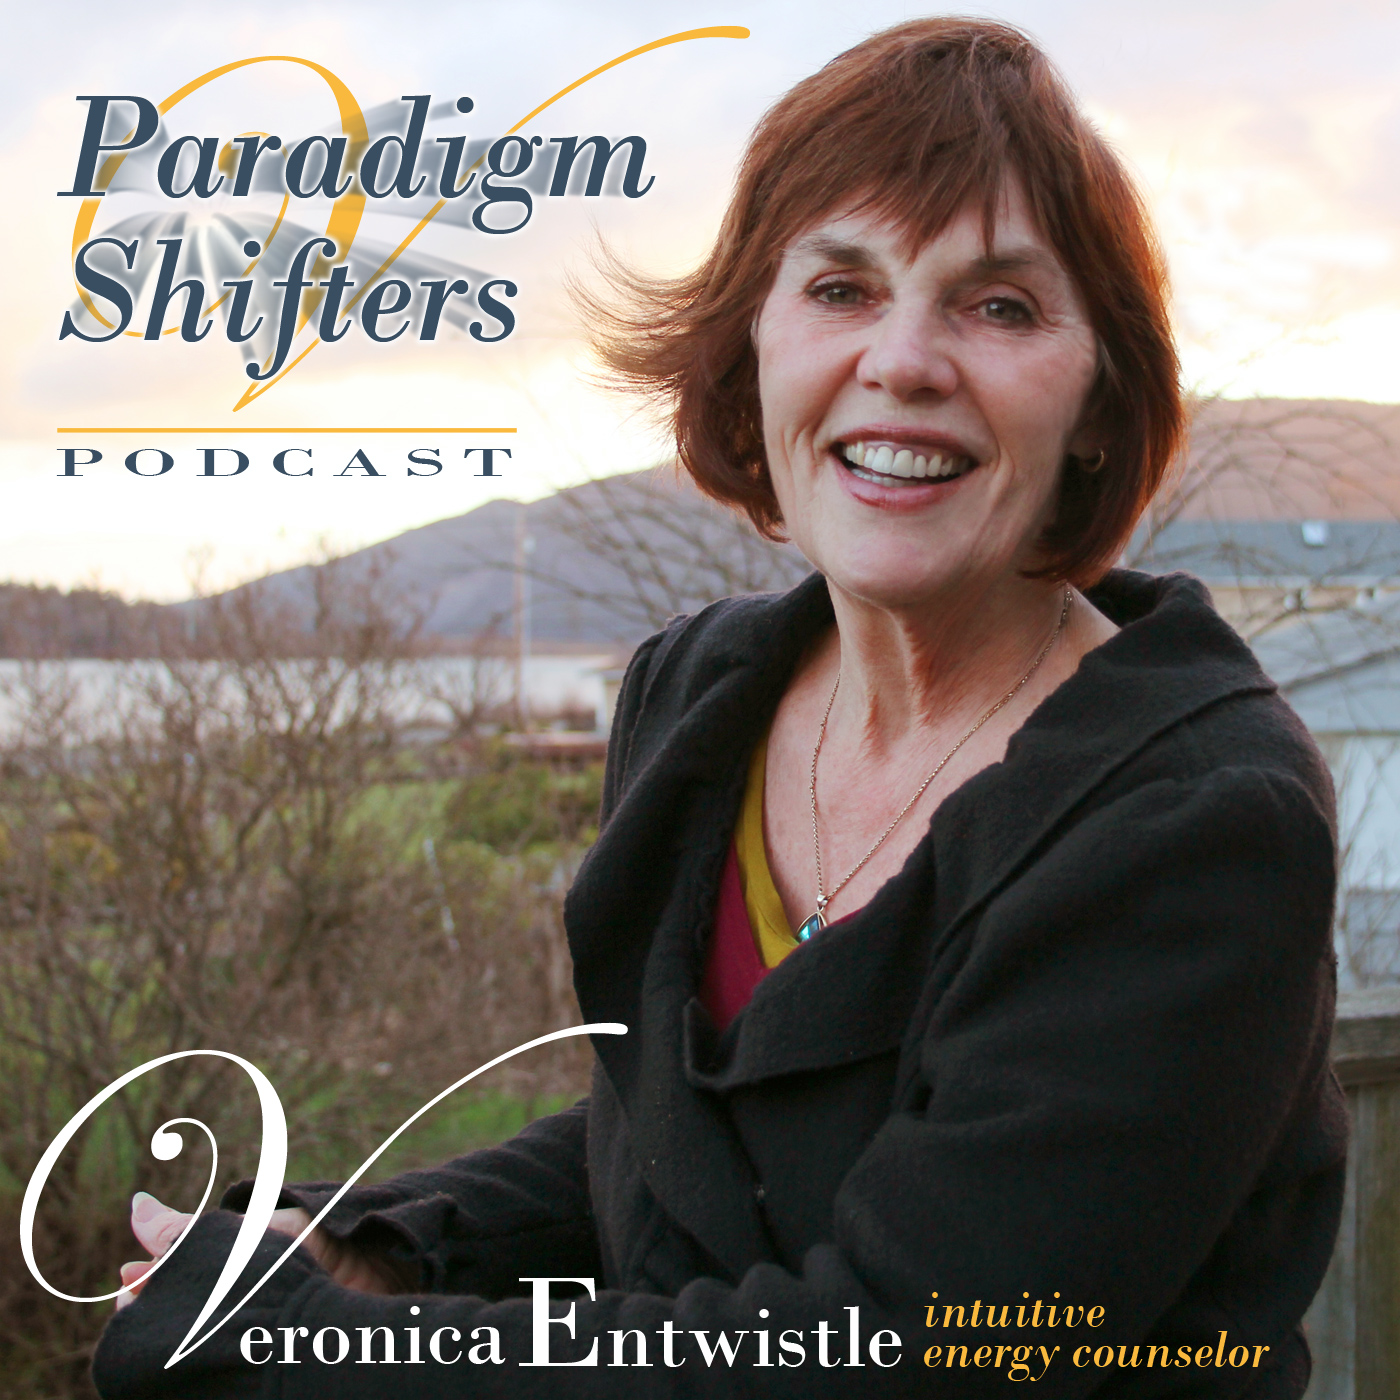 Veronica Entwistle : Intuitive Energy Counselor and Radio Personality